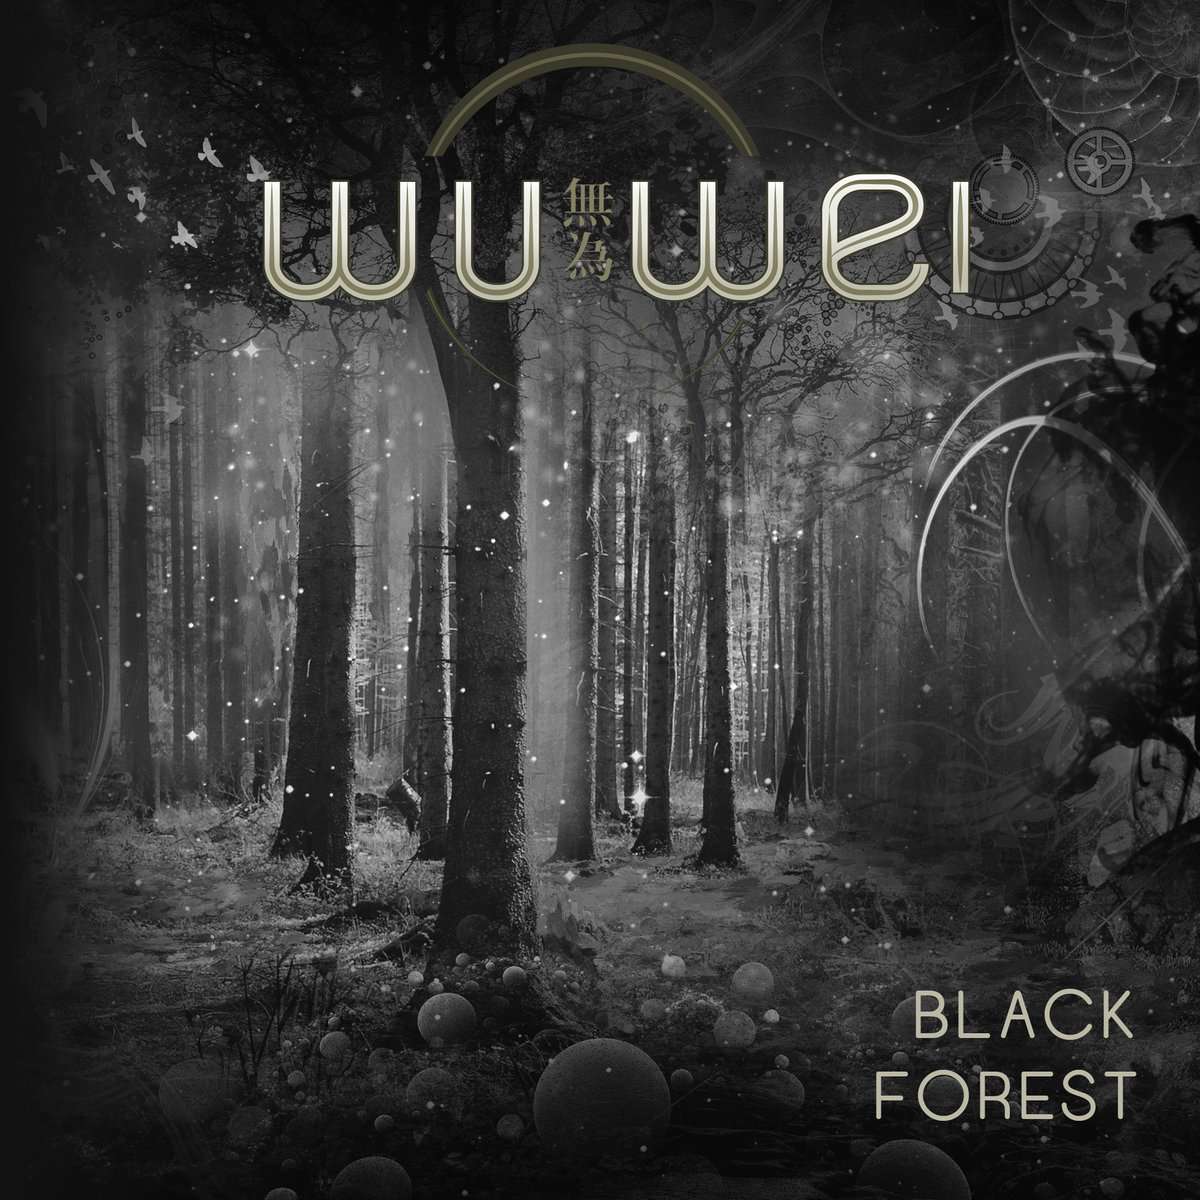 Wu Wei - Our Ghosts (SOULULAR Remix) @ 'Black Forest' album (electronic, future bass)